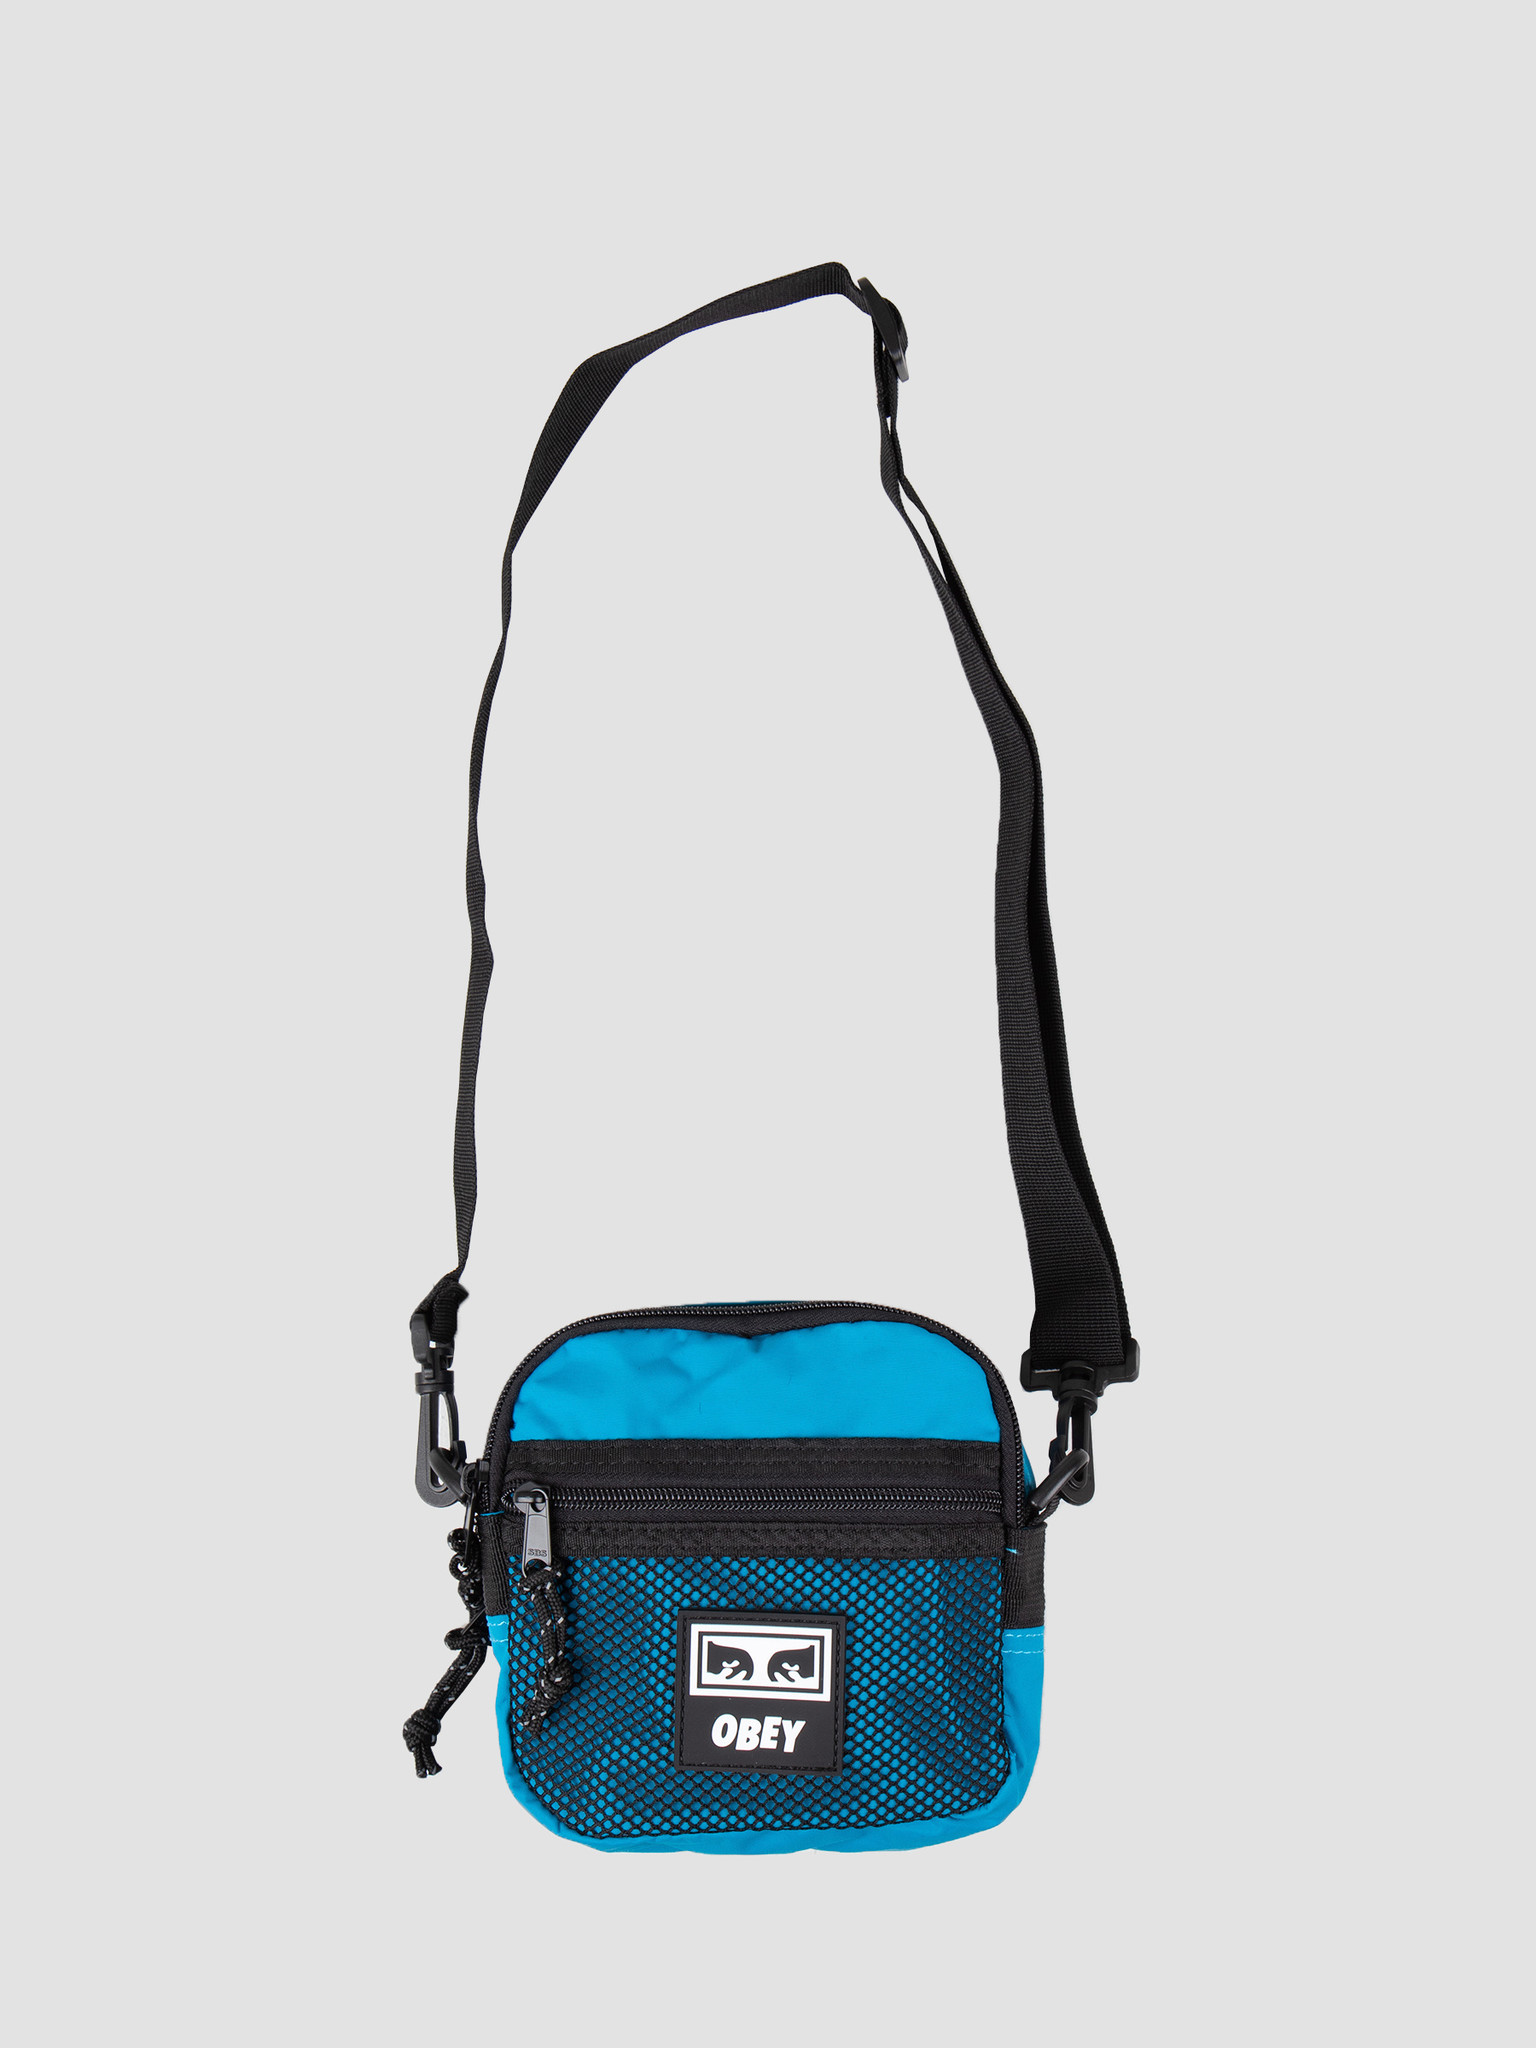 Obey Obey Conditions Traveler Bag PTL 100010109